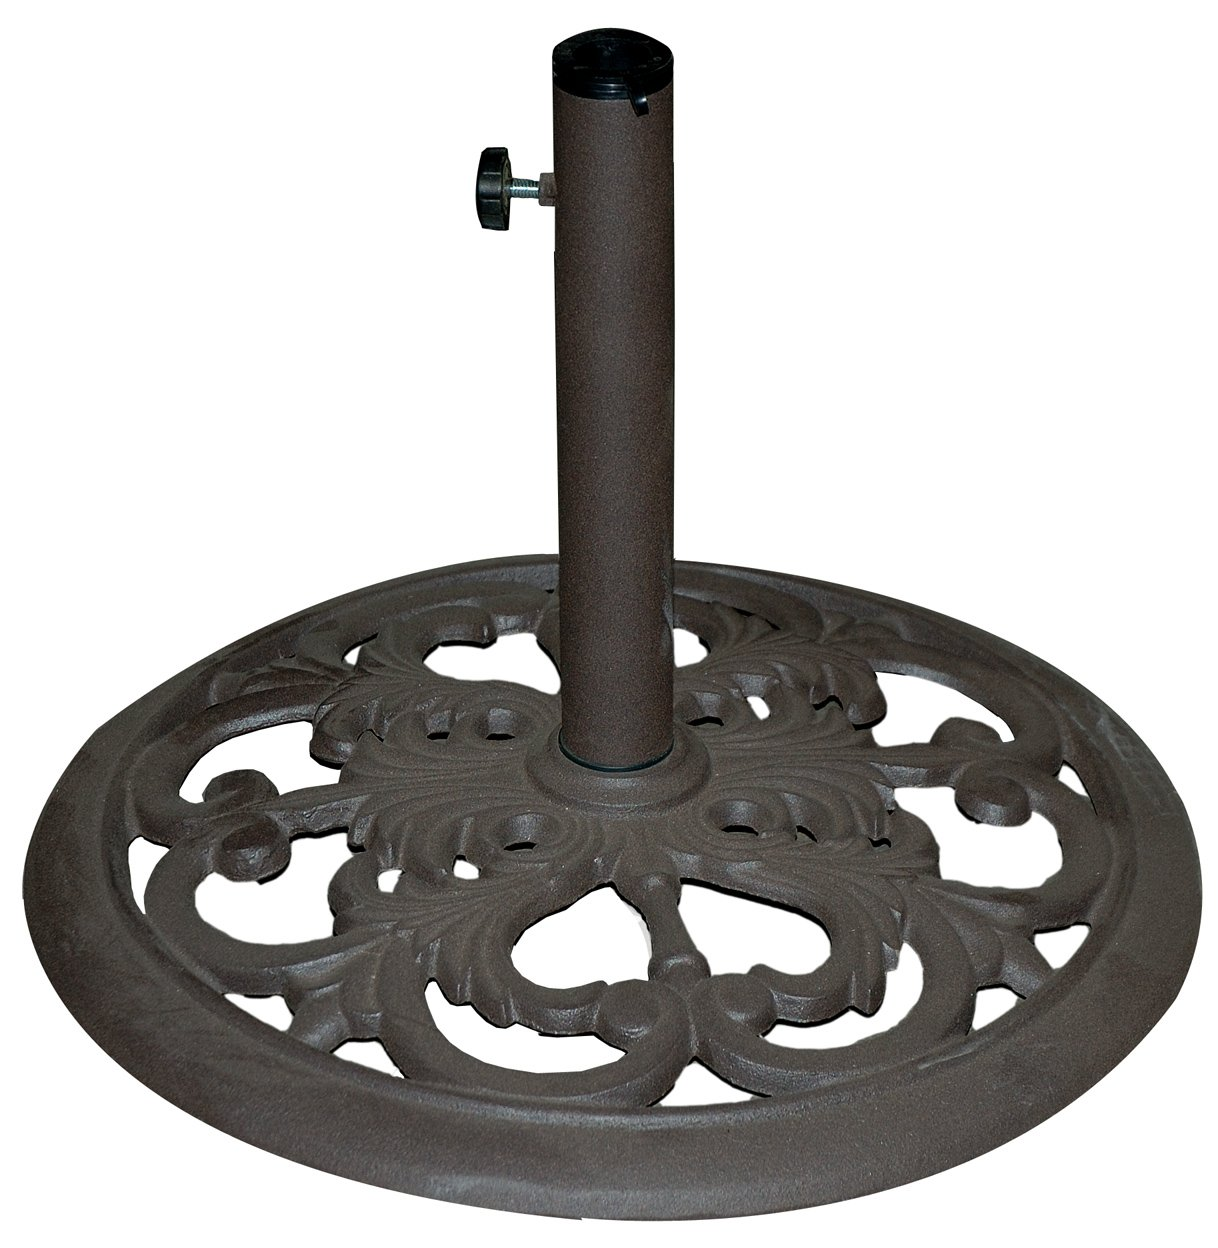 Amazon.com: Umbrella Stands: Patio, Lawn & Garden